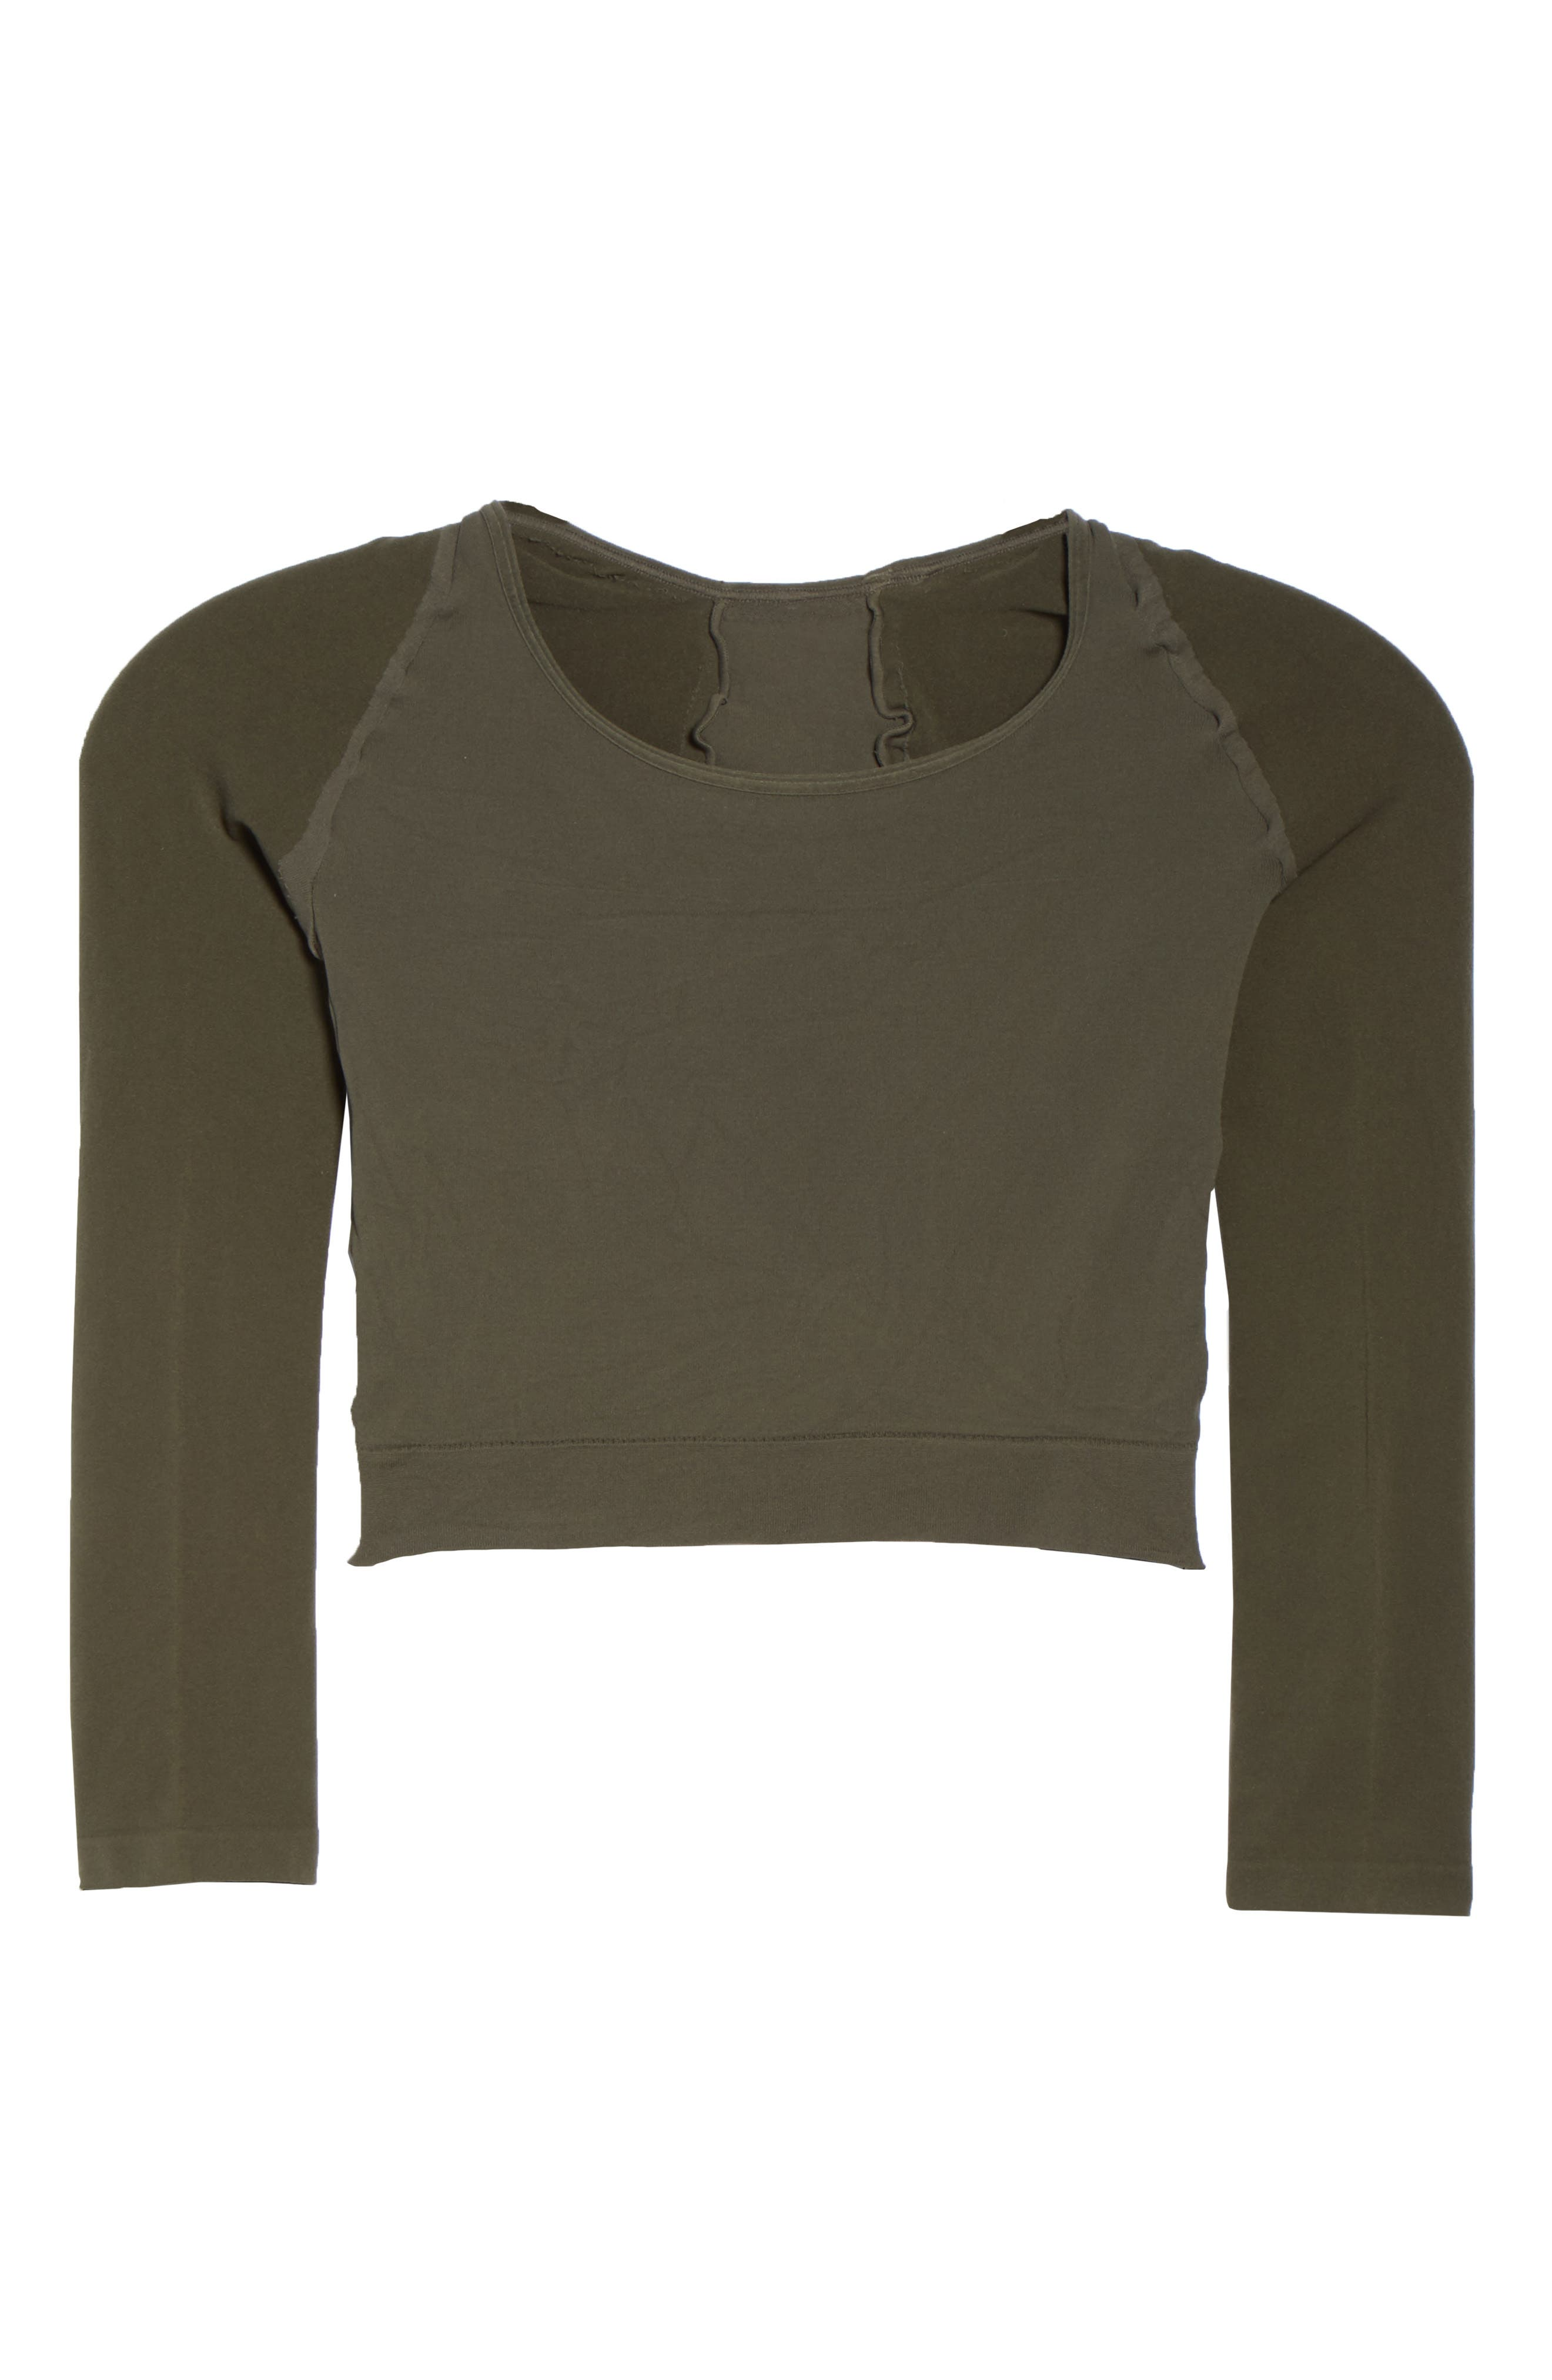 Arm Tights<sup>™</sup> Crop Top,                             Alternate thumbnail 6, color,                             DARK OLIVE